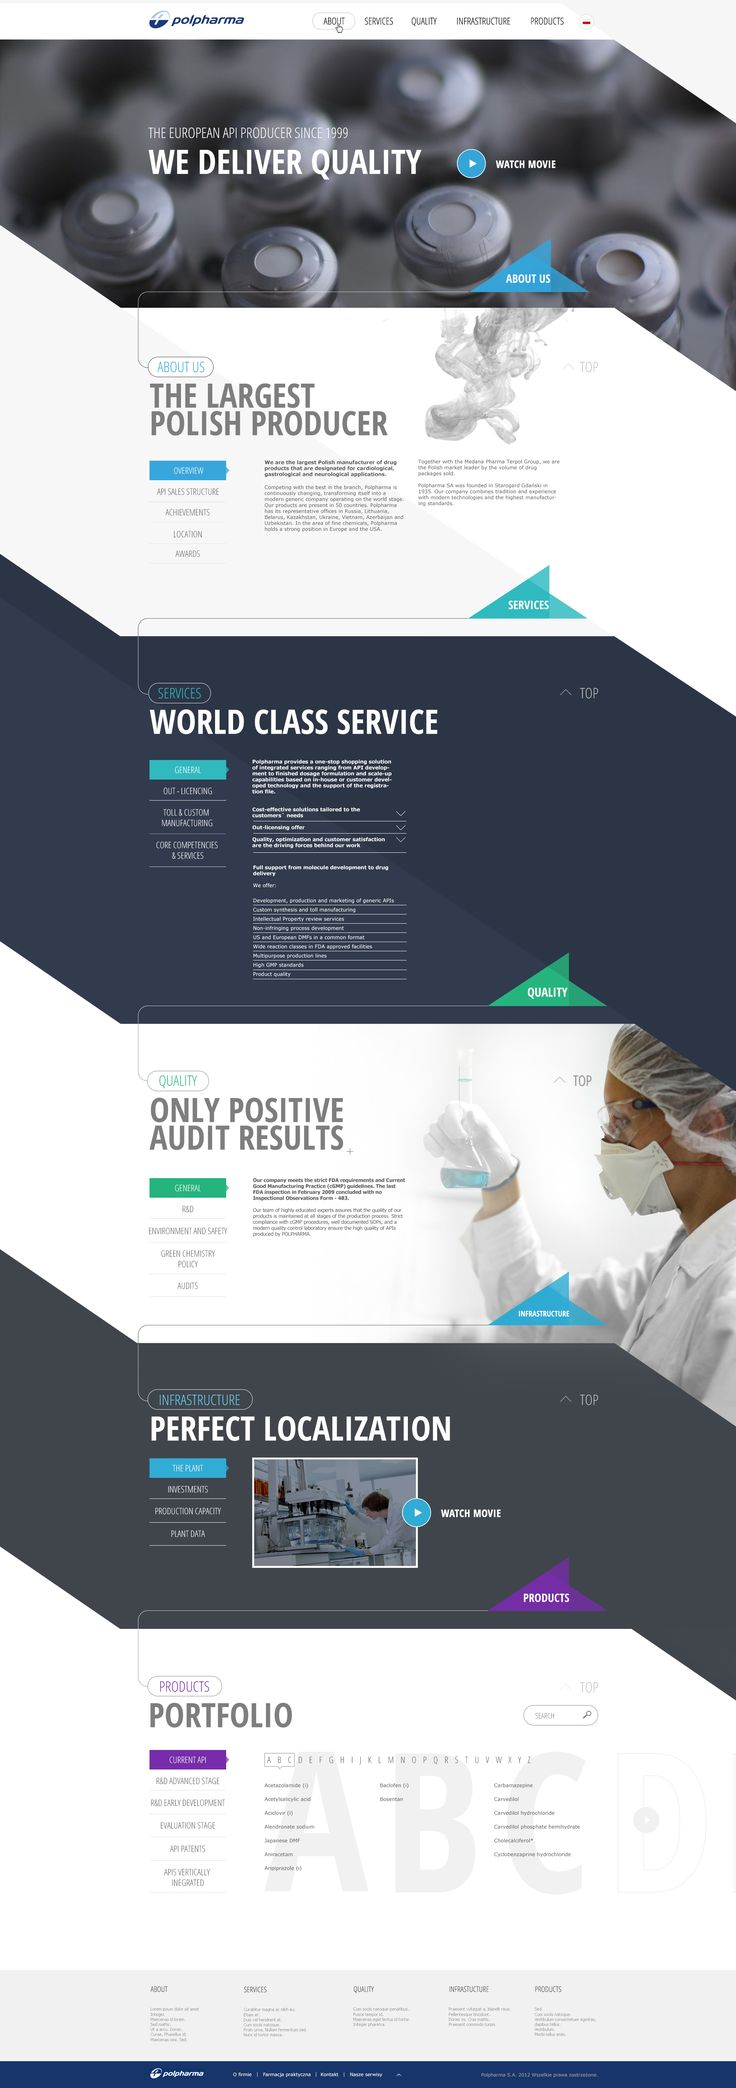 API Polpharma website design. more on http://html5themes.org